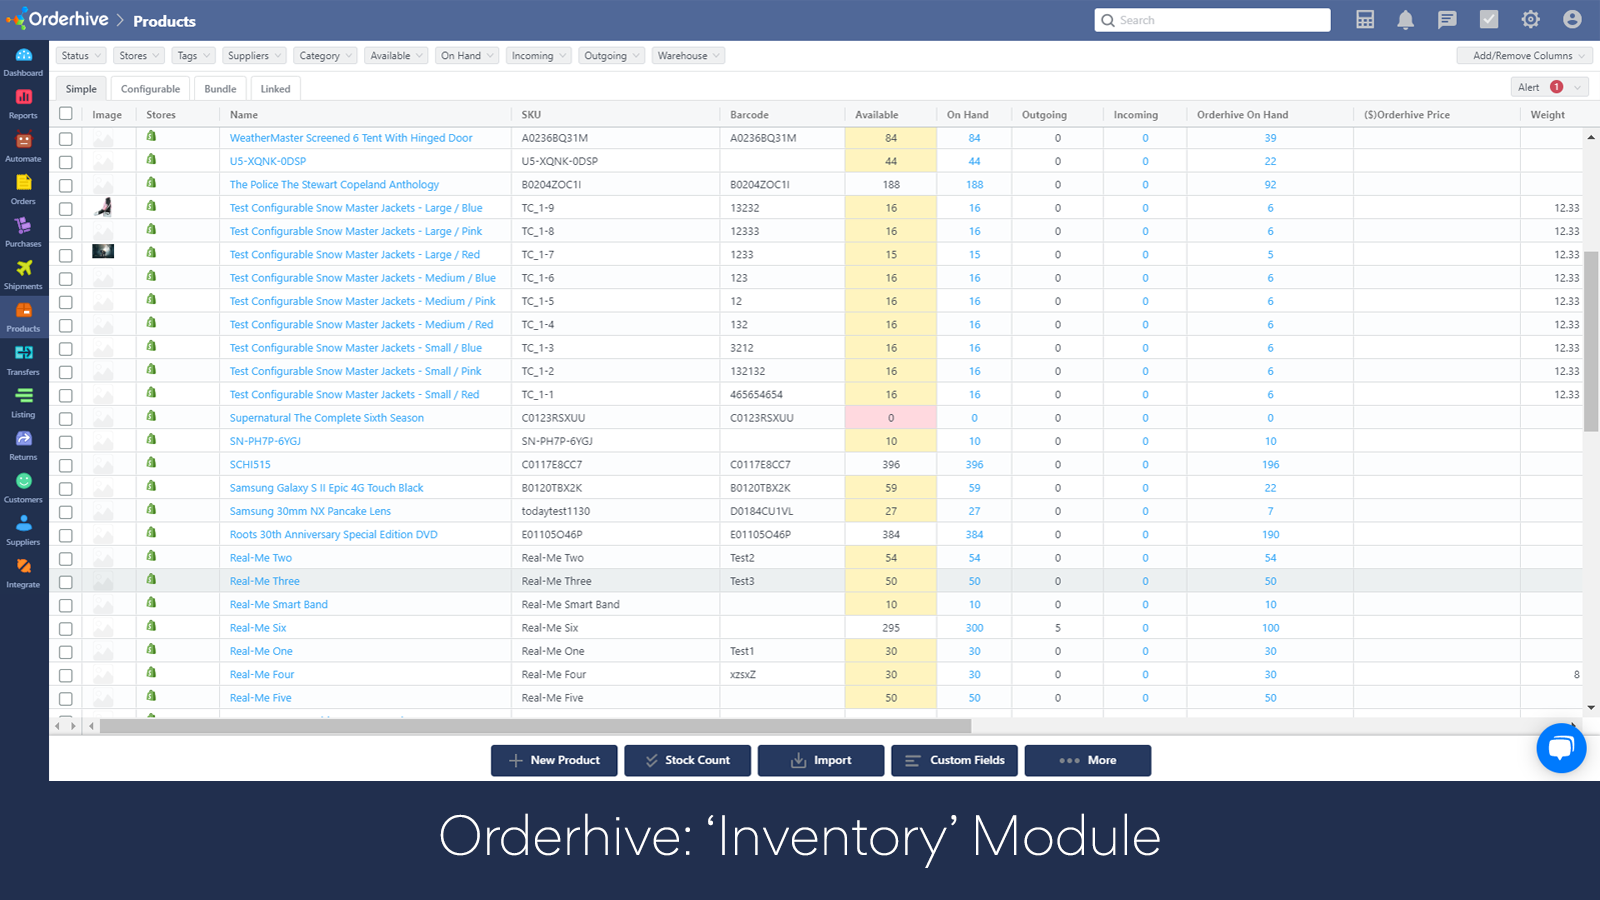 Inventory List Page